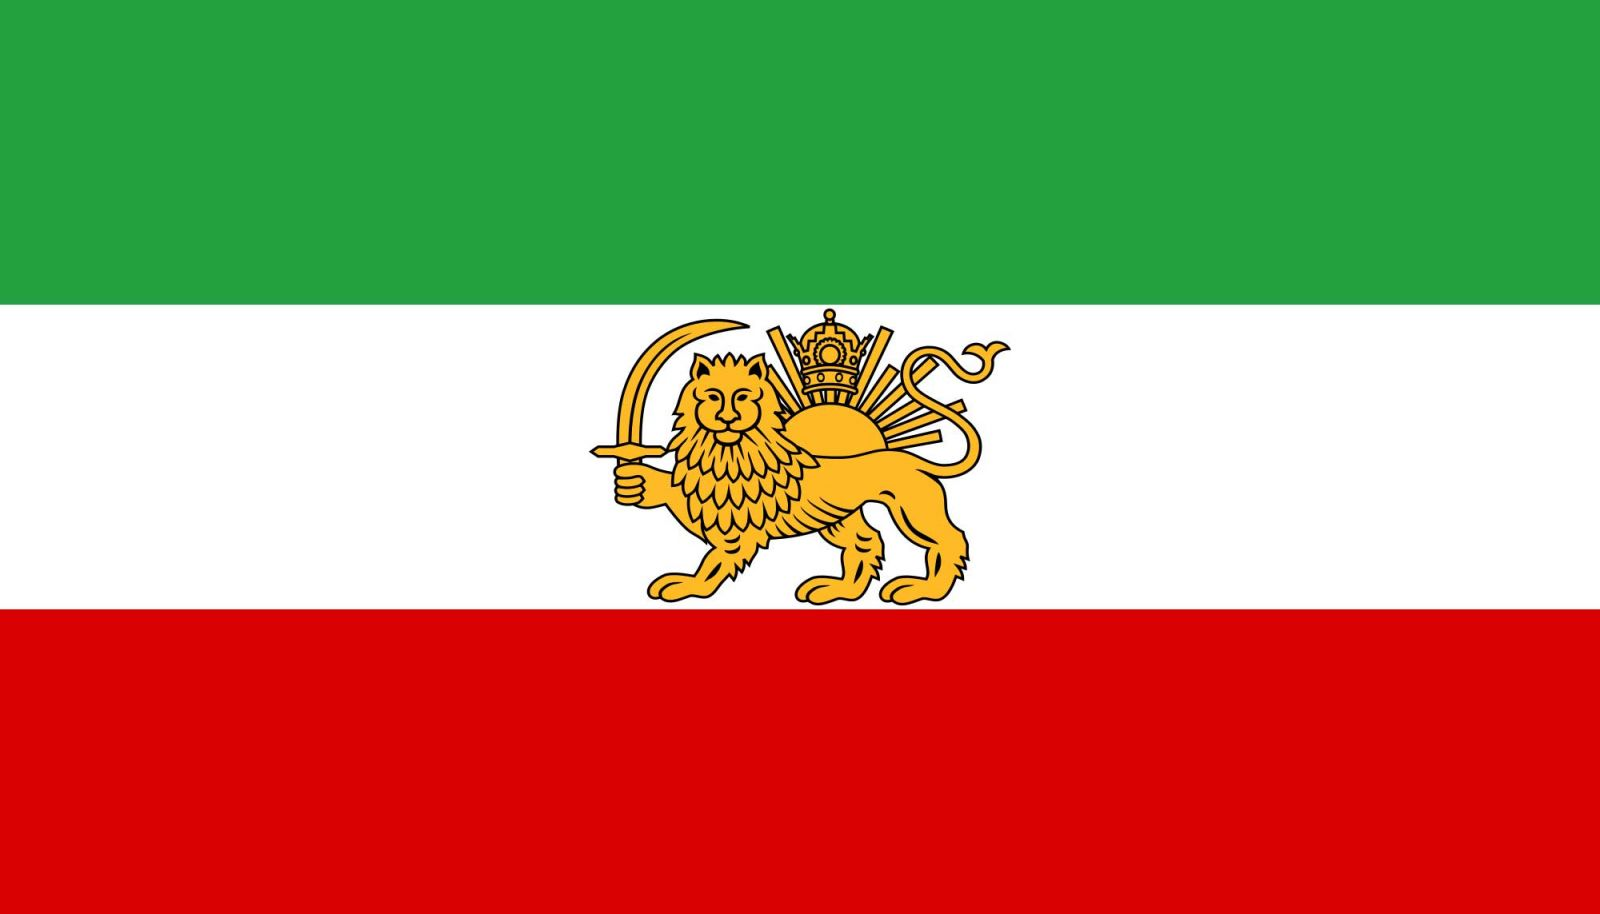 Flag of Iran during Pahlavi era